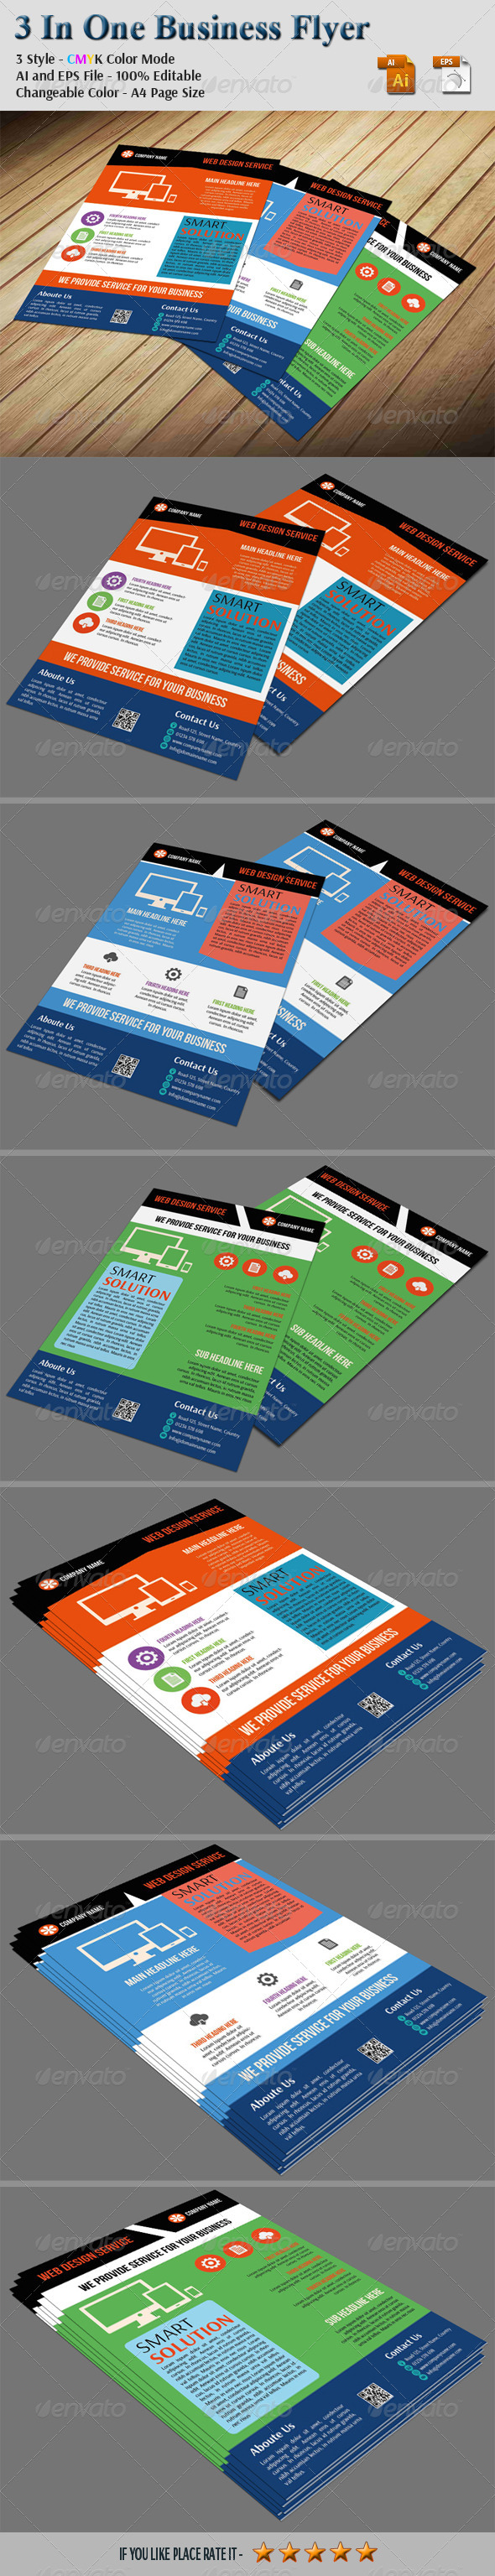 3 In One Business Flyer - Corporate Flyers